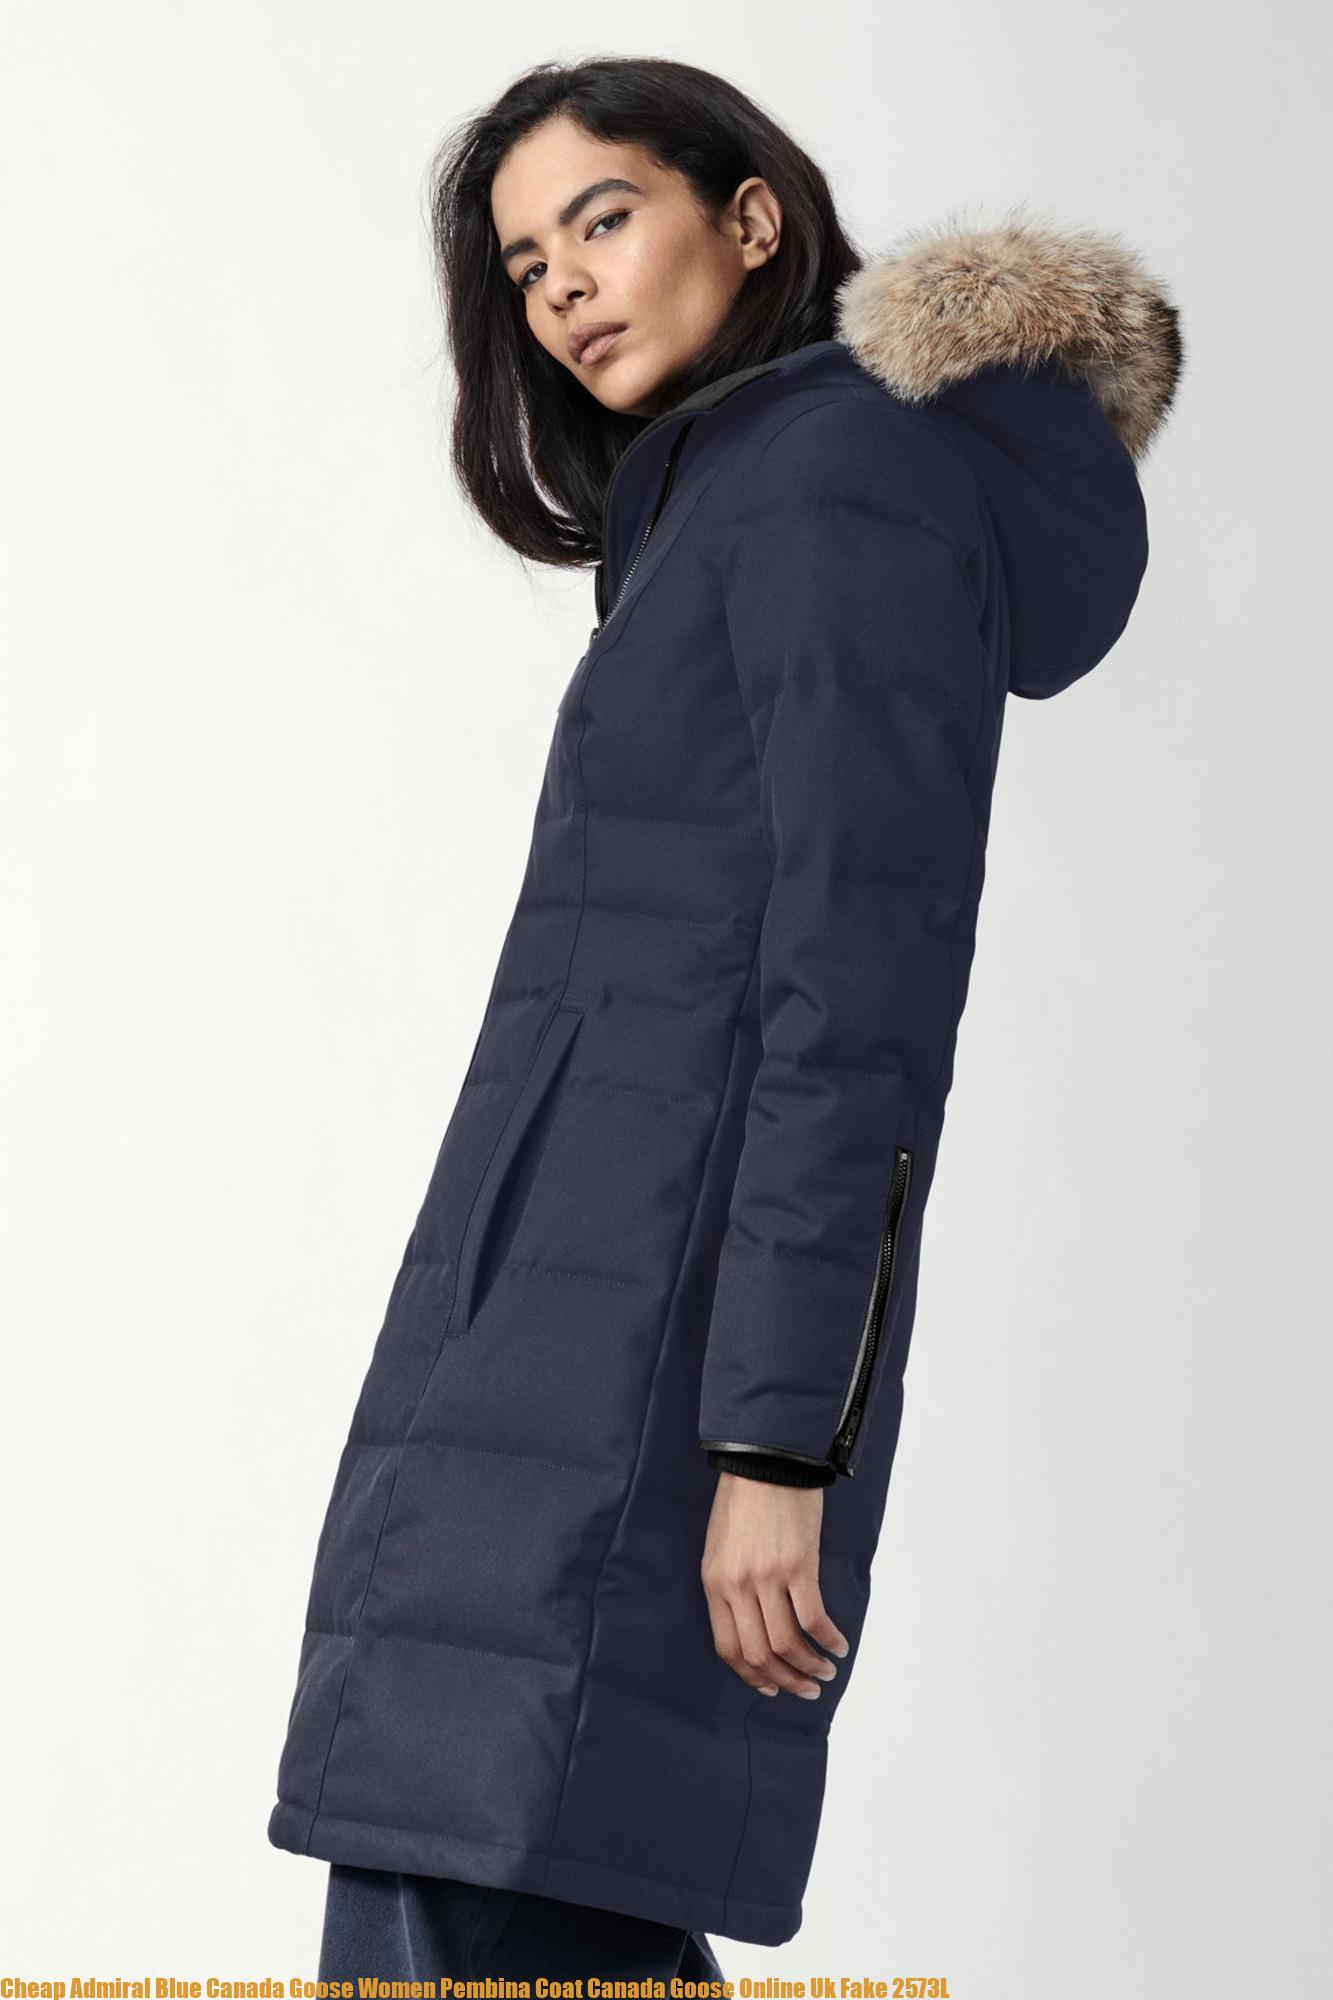 is canada goose online com fake